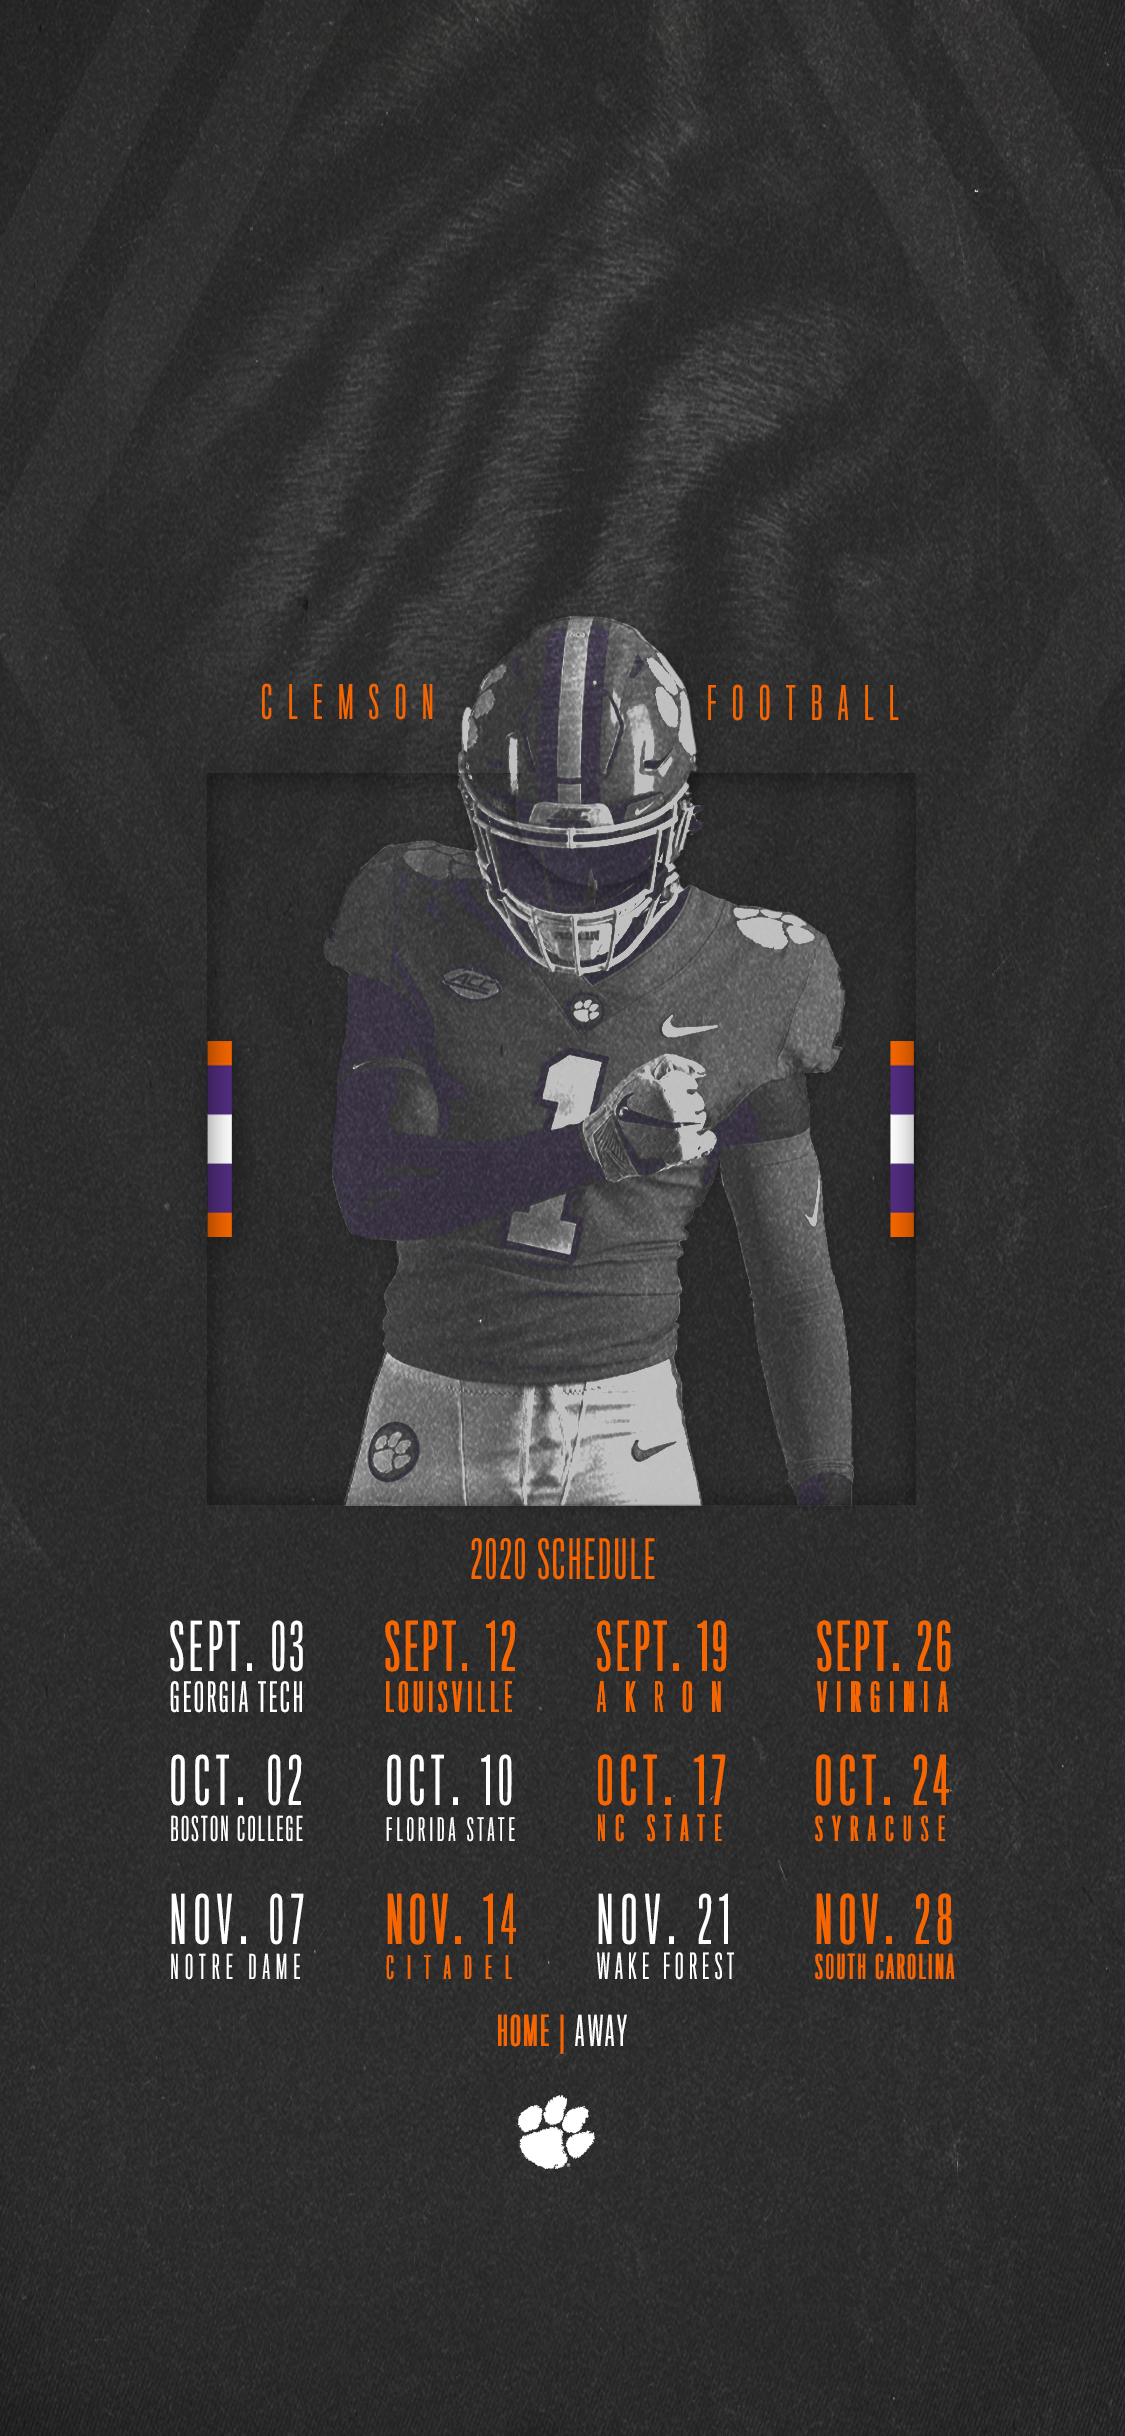 Clemson Announces 2020 Football Schedule – Clemson Tigers pertaining to Printable 2021 Nfl Schedule